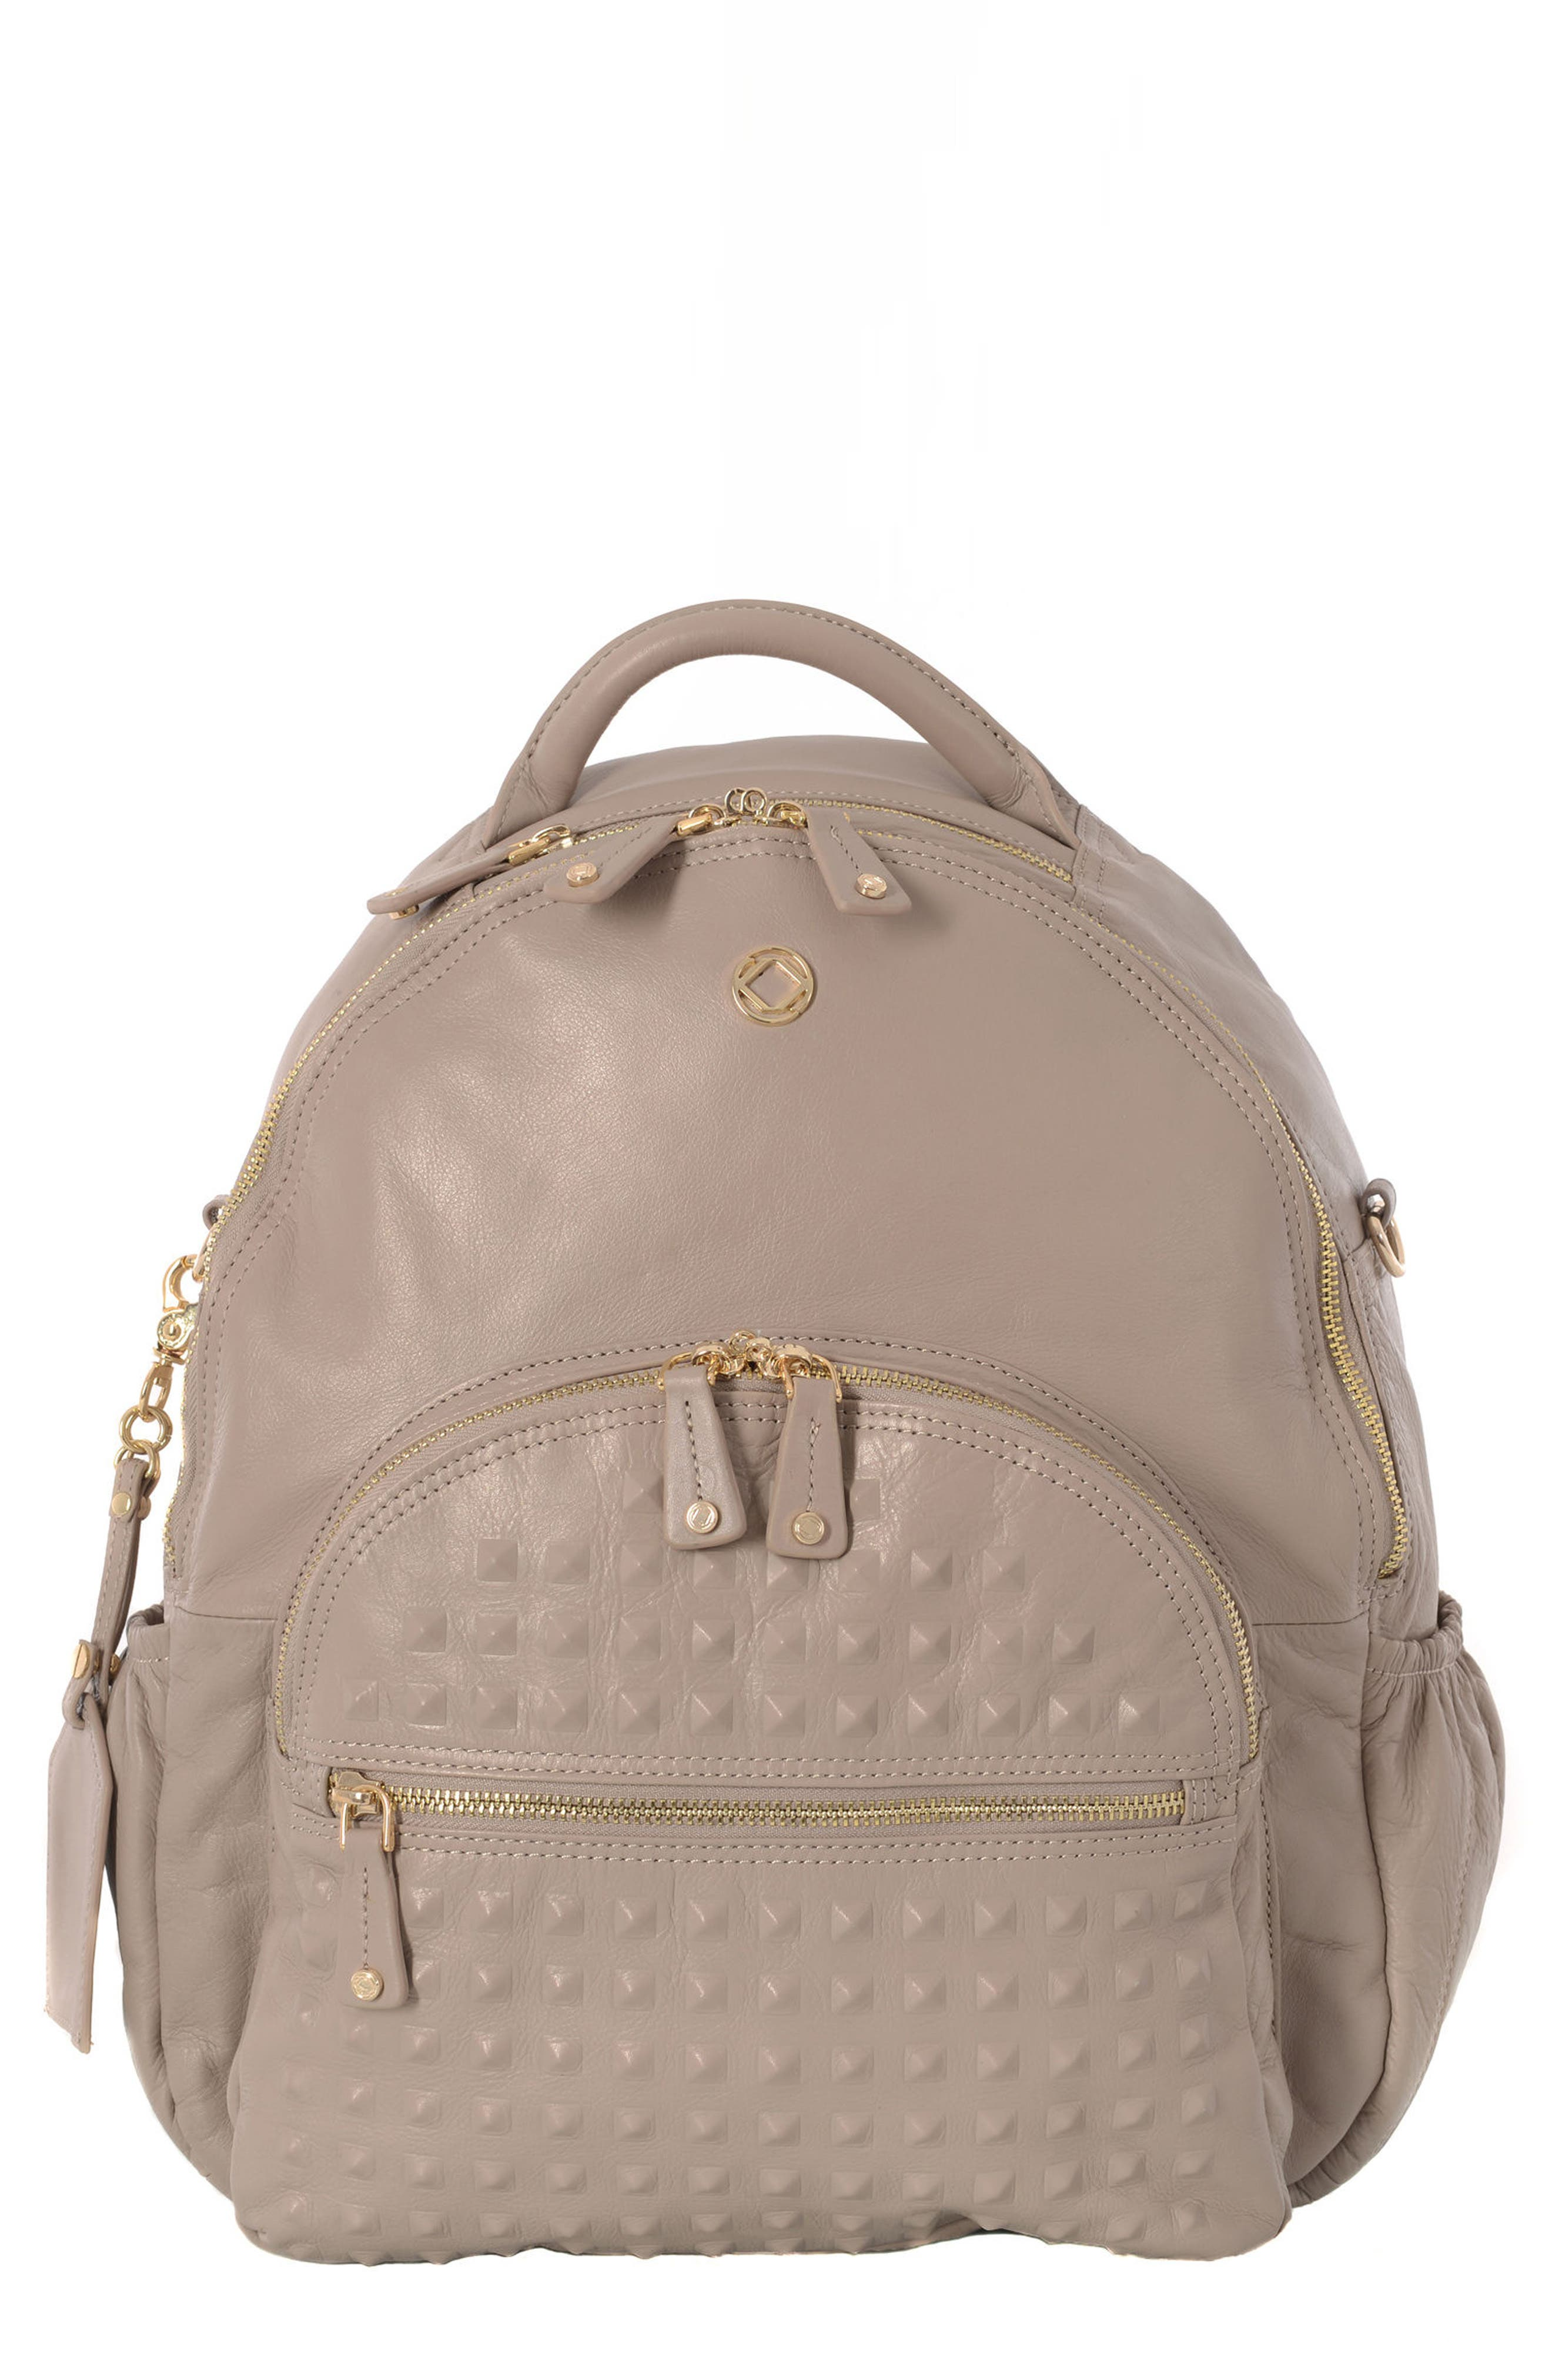 Joy Studded Diaper Backpack,                         Main,                         color, Taupe With Gold Harware